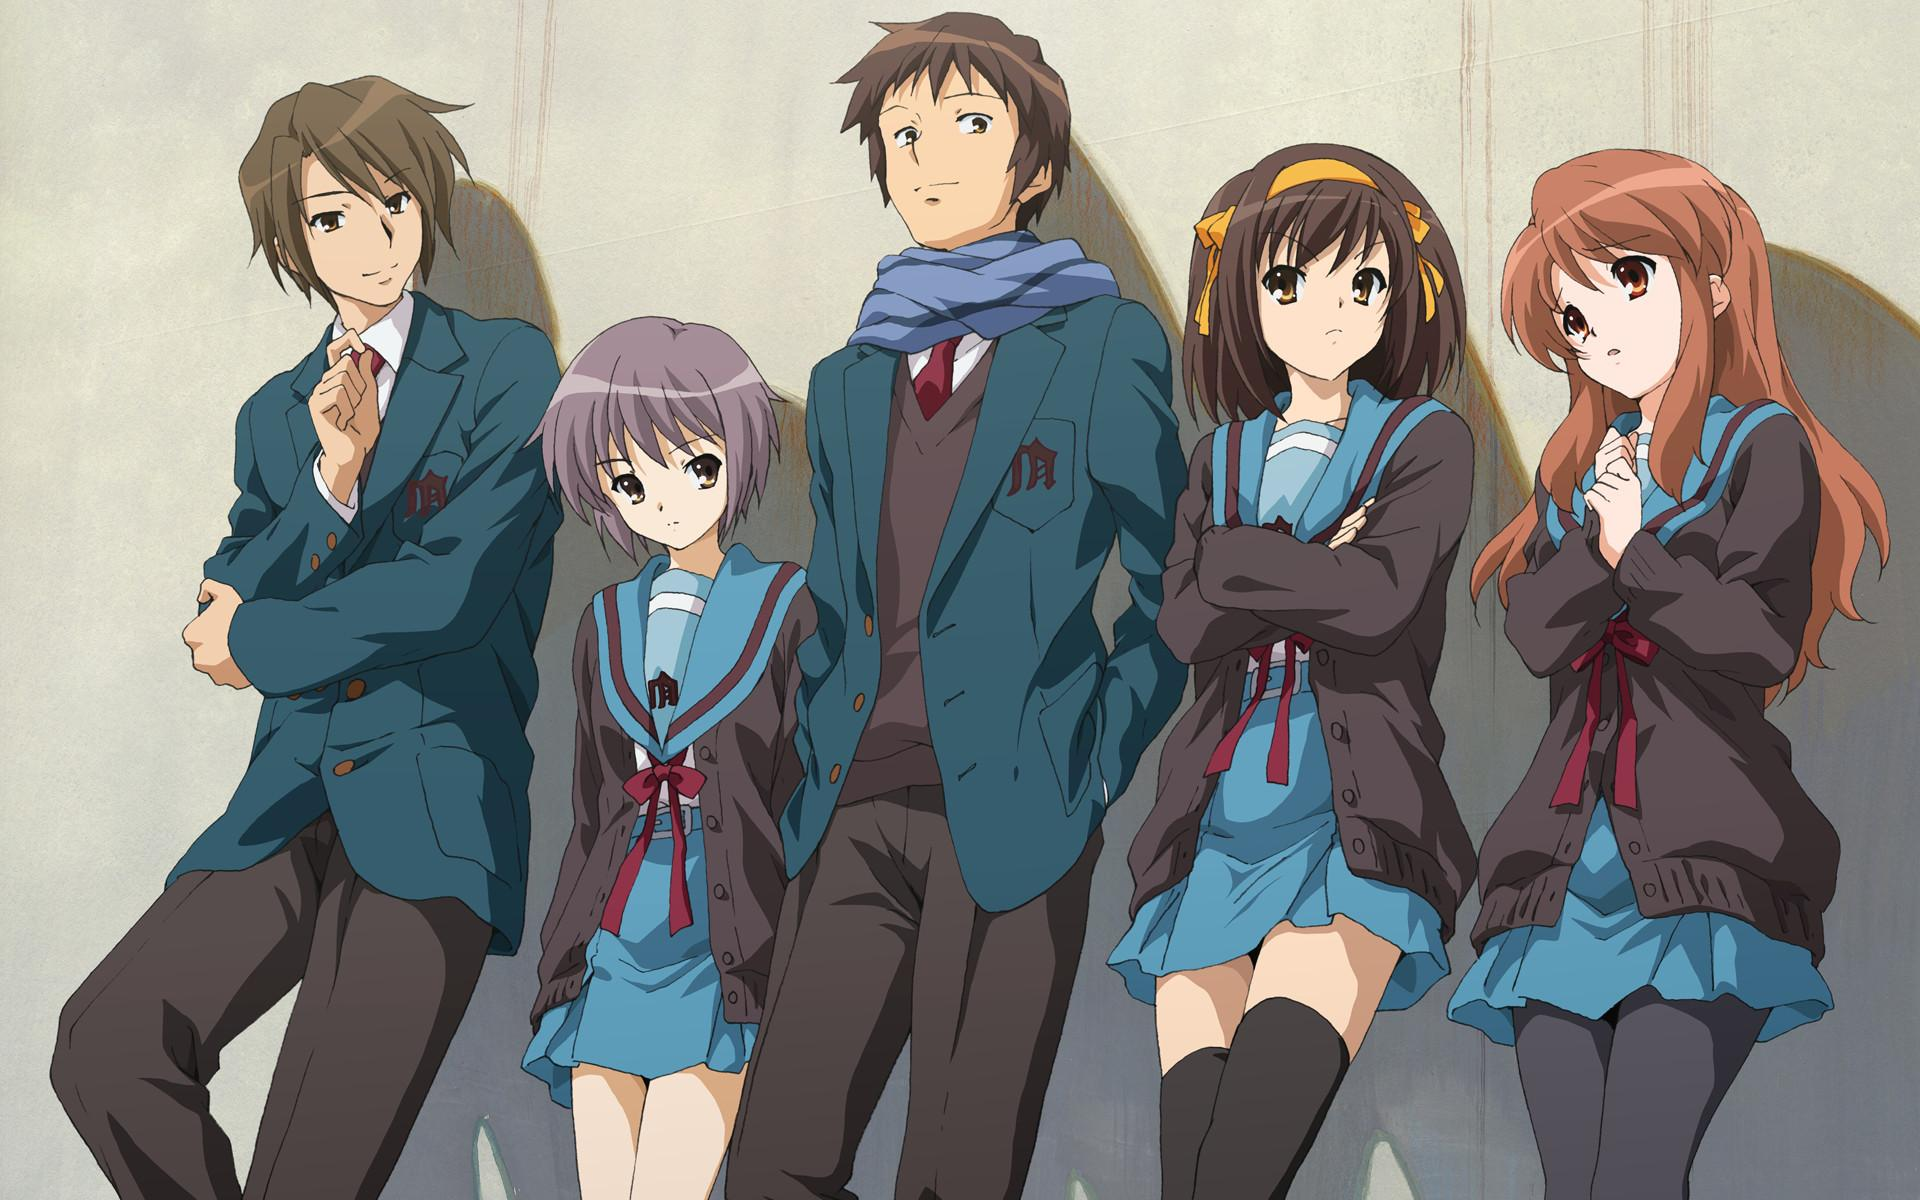 The Disappearance Of Haruhi Suzumiya Wallpapers - Wallpaper Cave